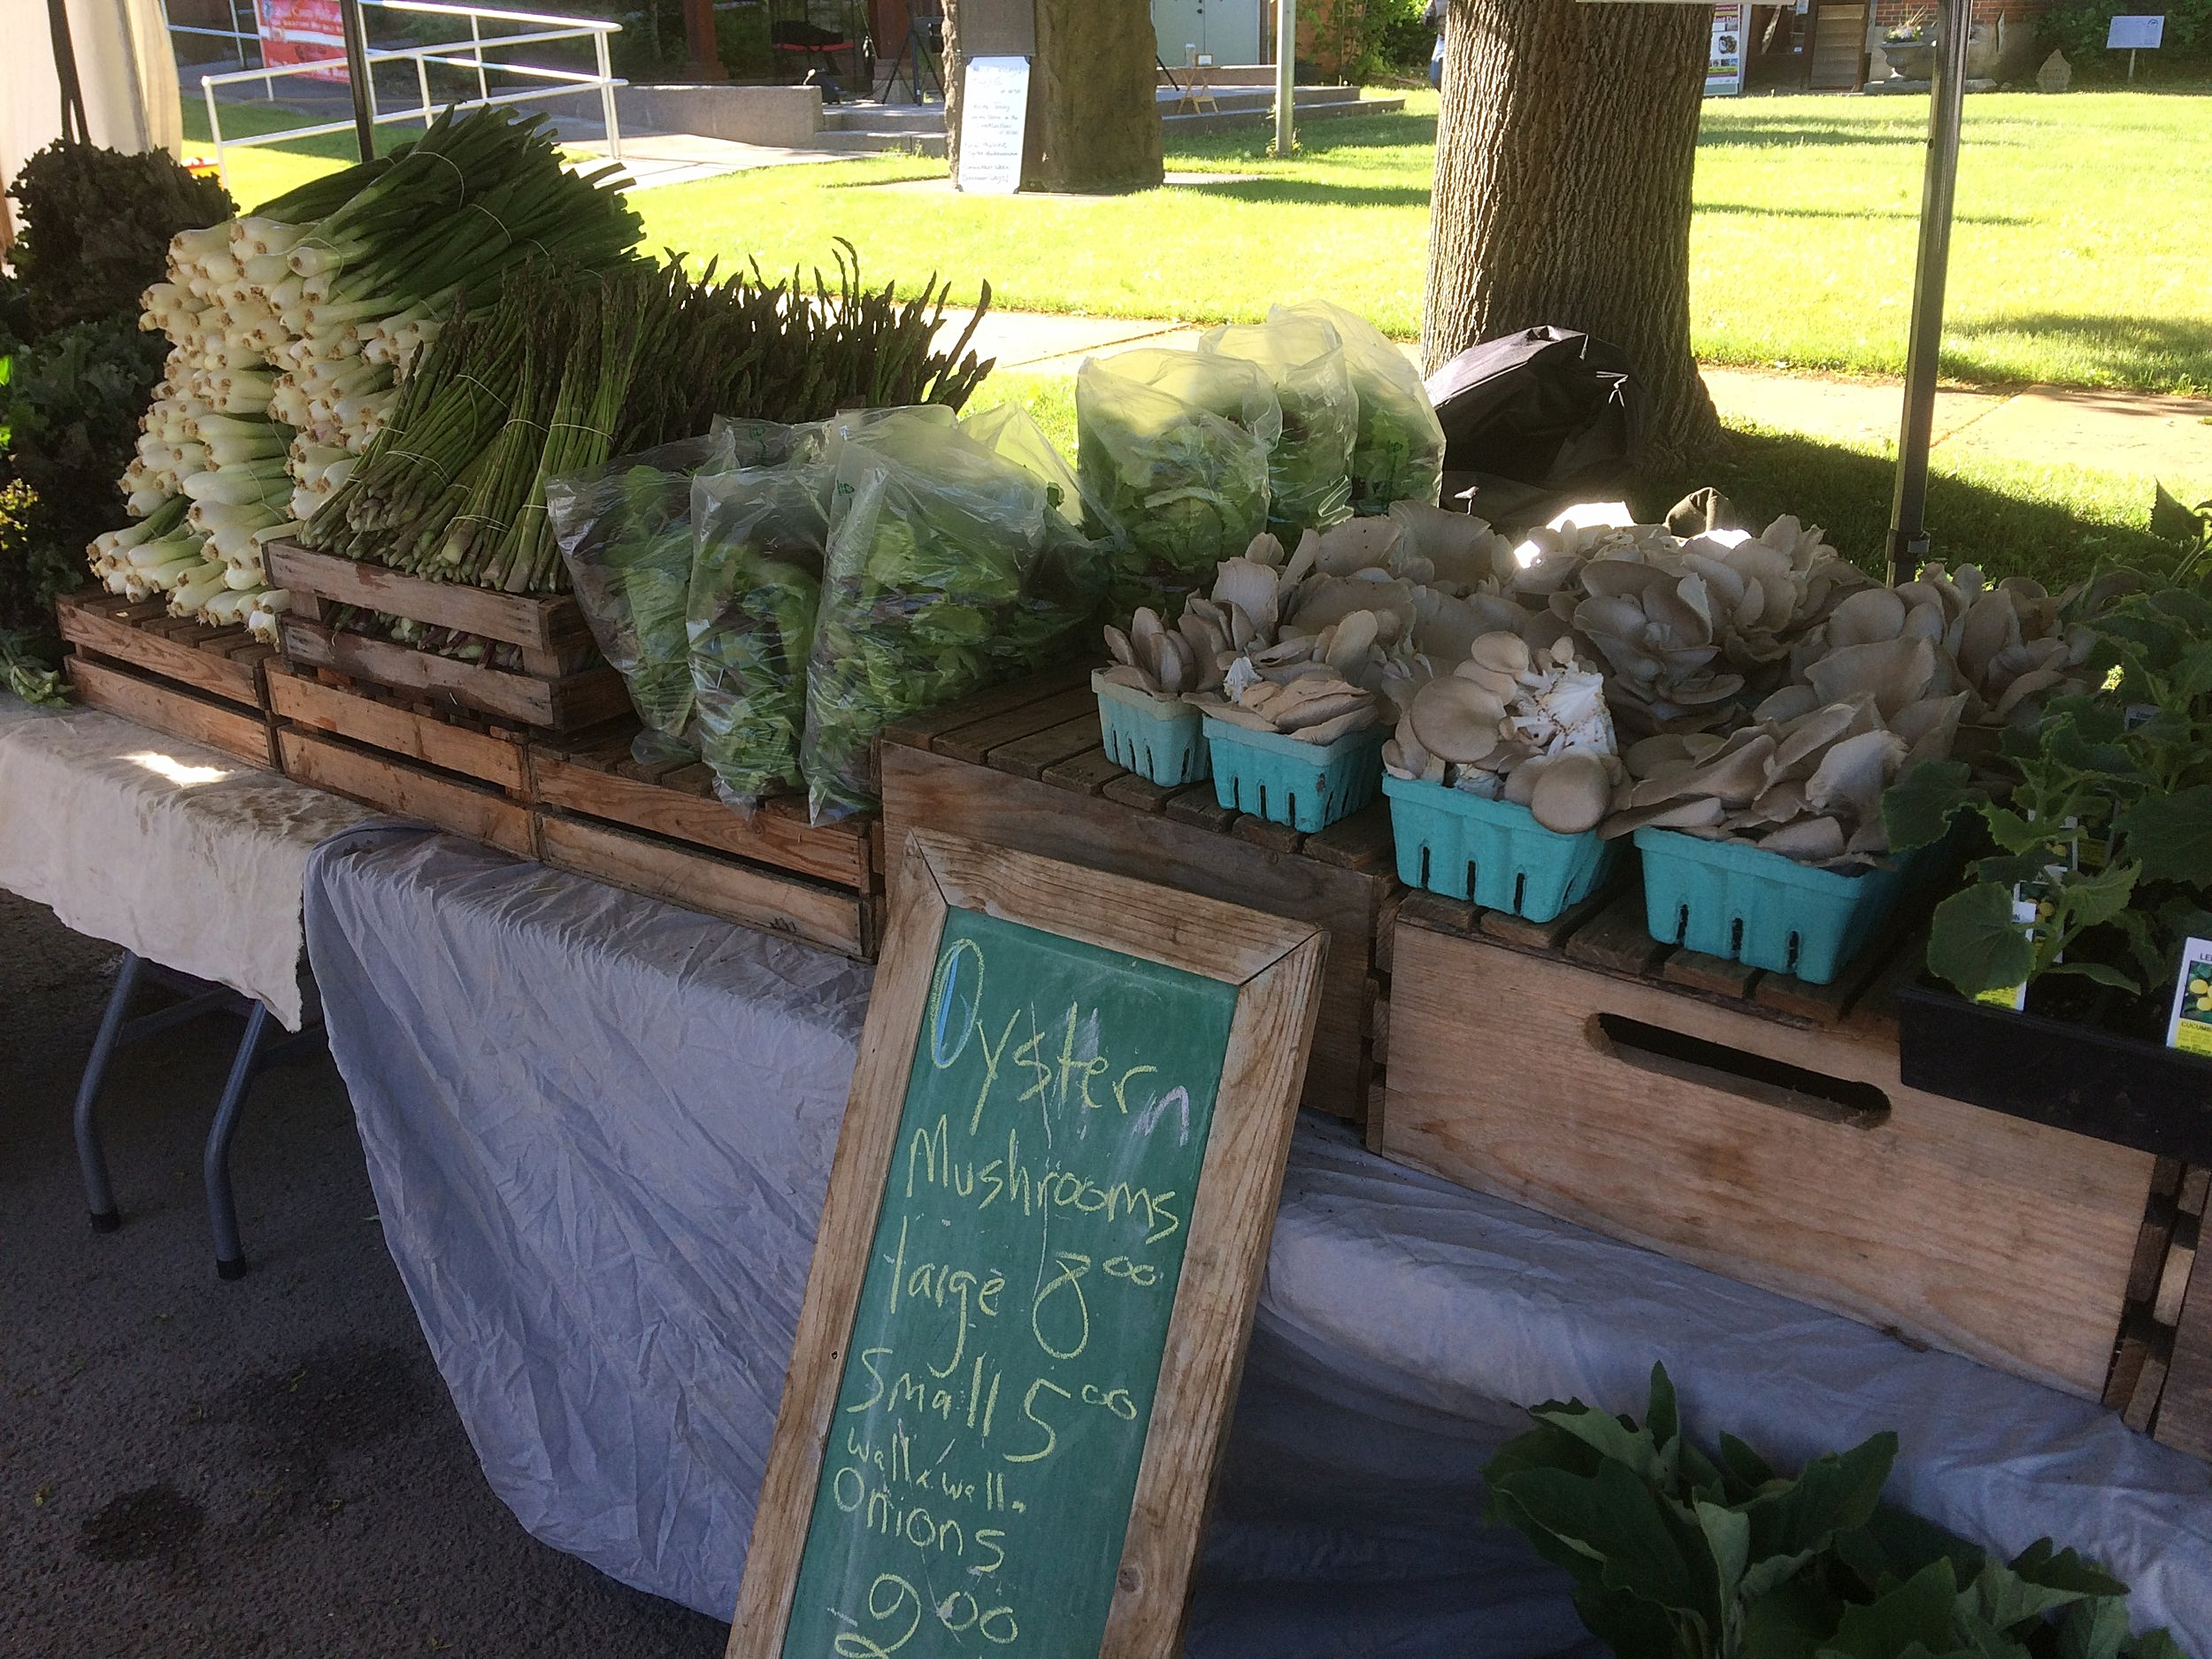 Hamilton Farmer's Market - Come check out our stand on the west side of Bedford St. 9:00-12:30; Saturdays May - October.